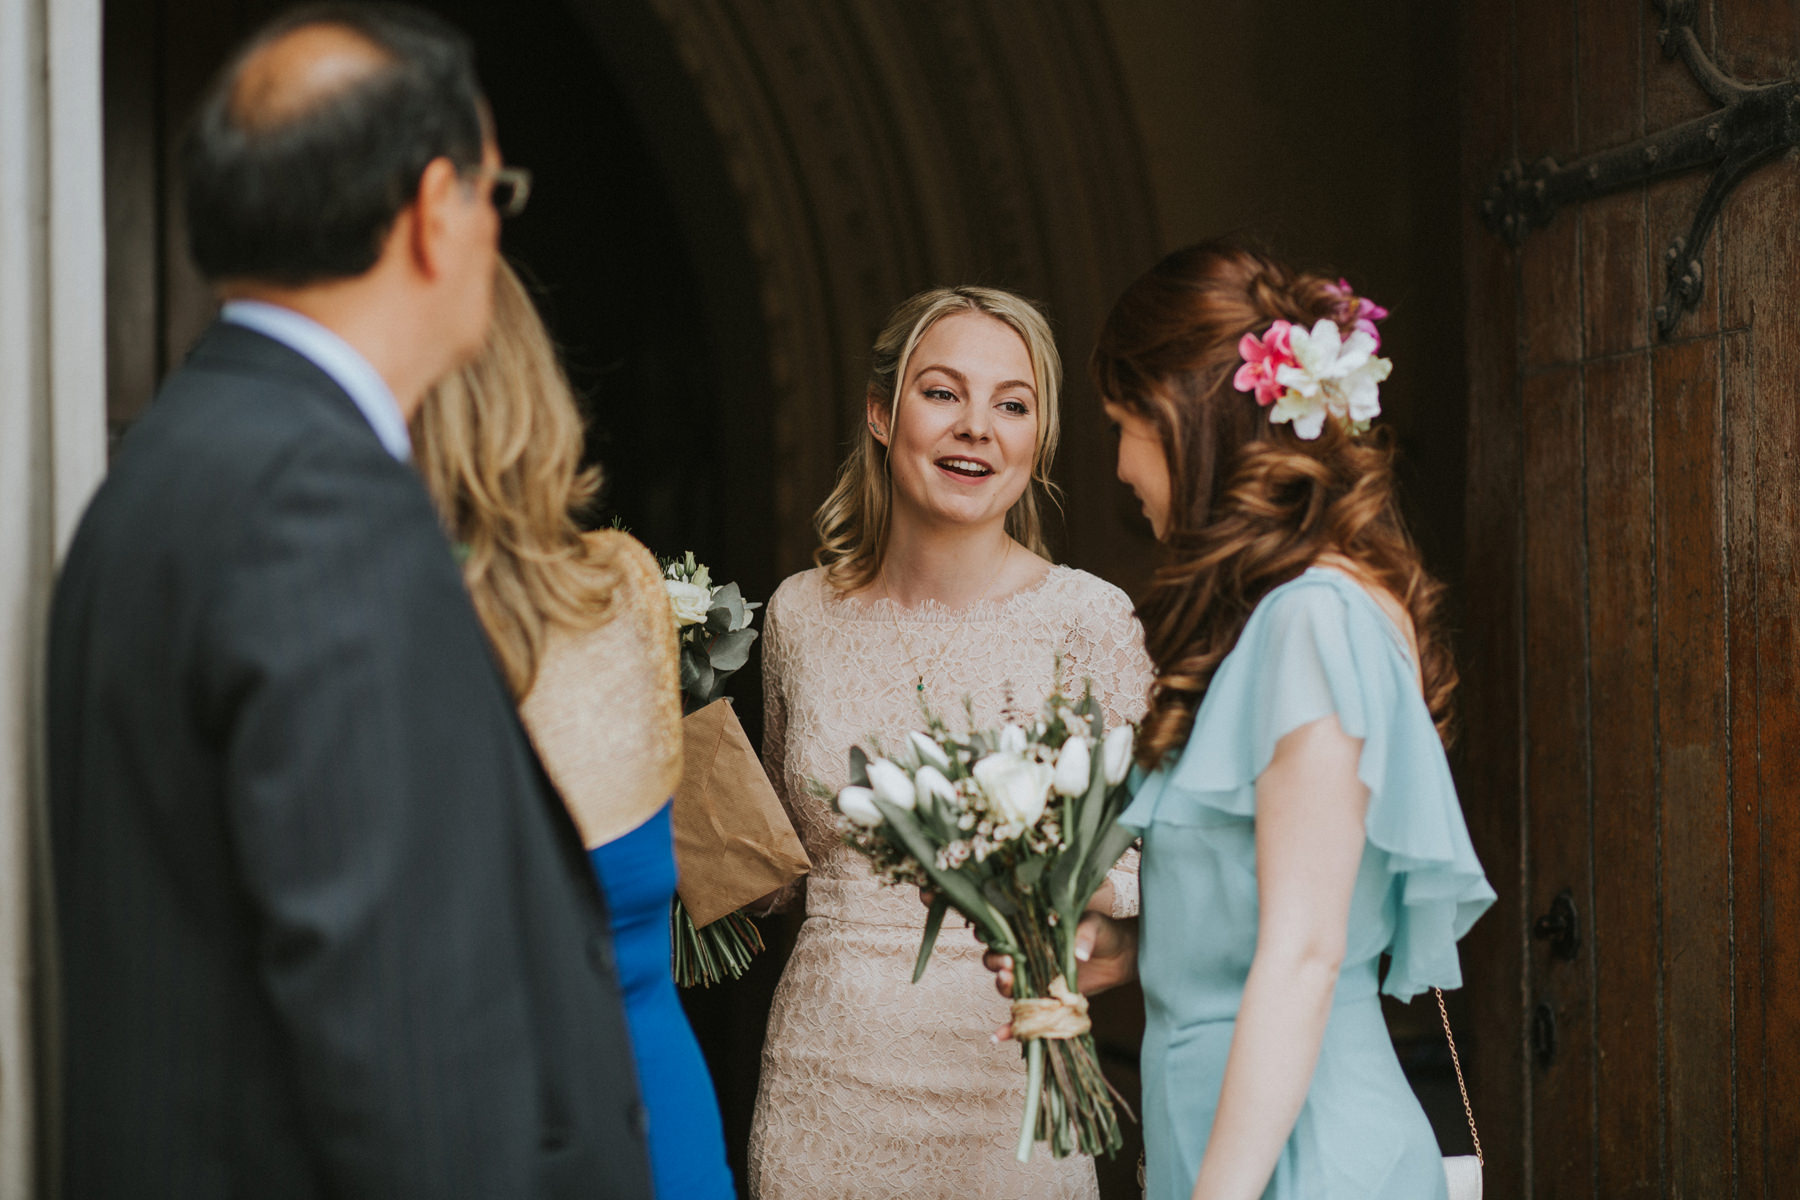 LD-357-bridal-party-candids-outside-St-Marys-Clapham-London-reportage-wedding.jpg